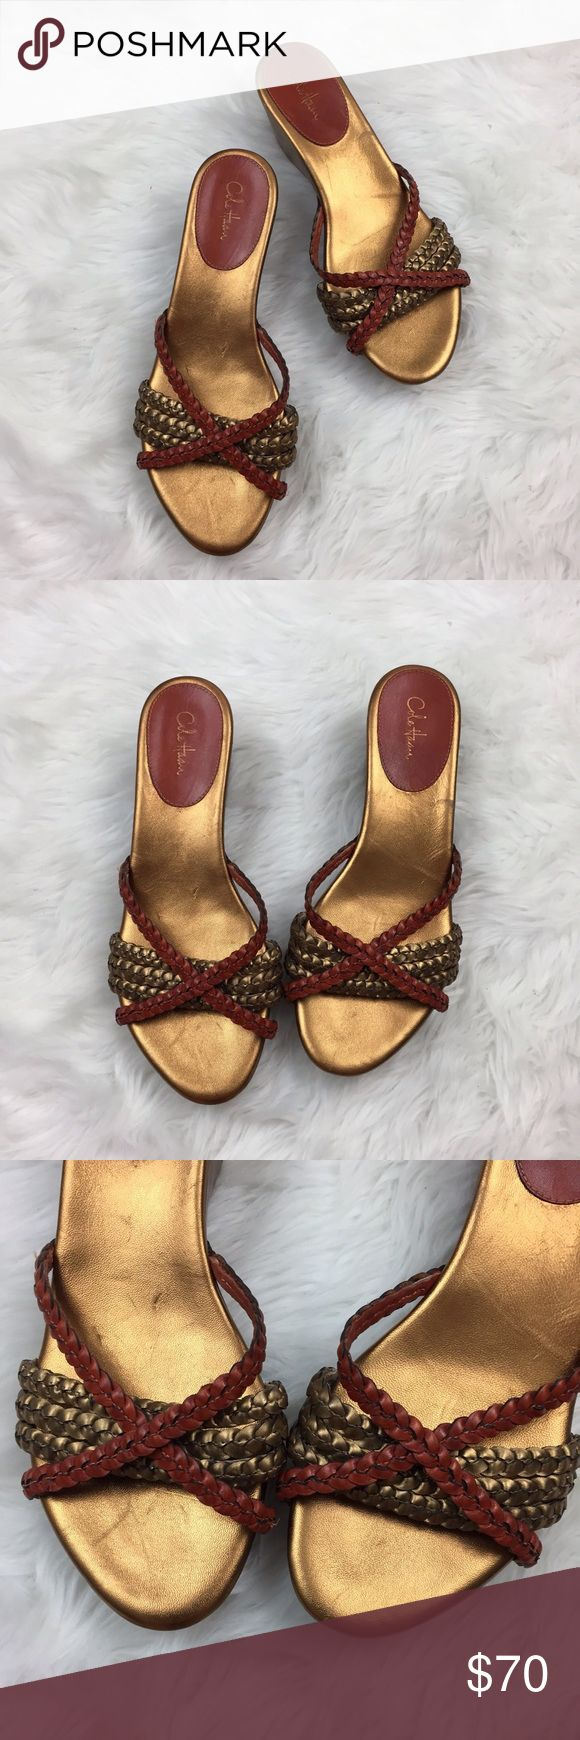 🌞Cole Haan Metallic Braided Slip-on Wedge Sandals Cole Haan Women's Nike Air Metallic Braided Slip-on Wedge Sandals Size 8  2 inches tall  This has been gently worn with no major flaws.  Please refer to photos for more details. Cole Haan Shoes Sandals